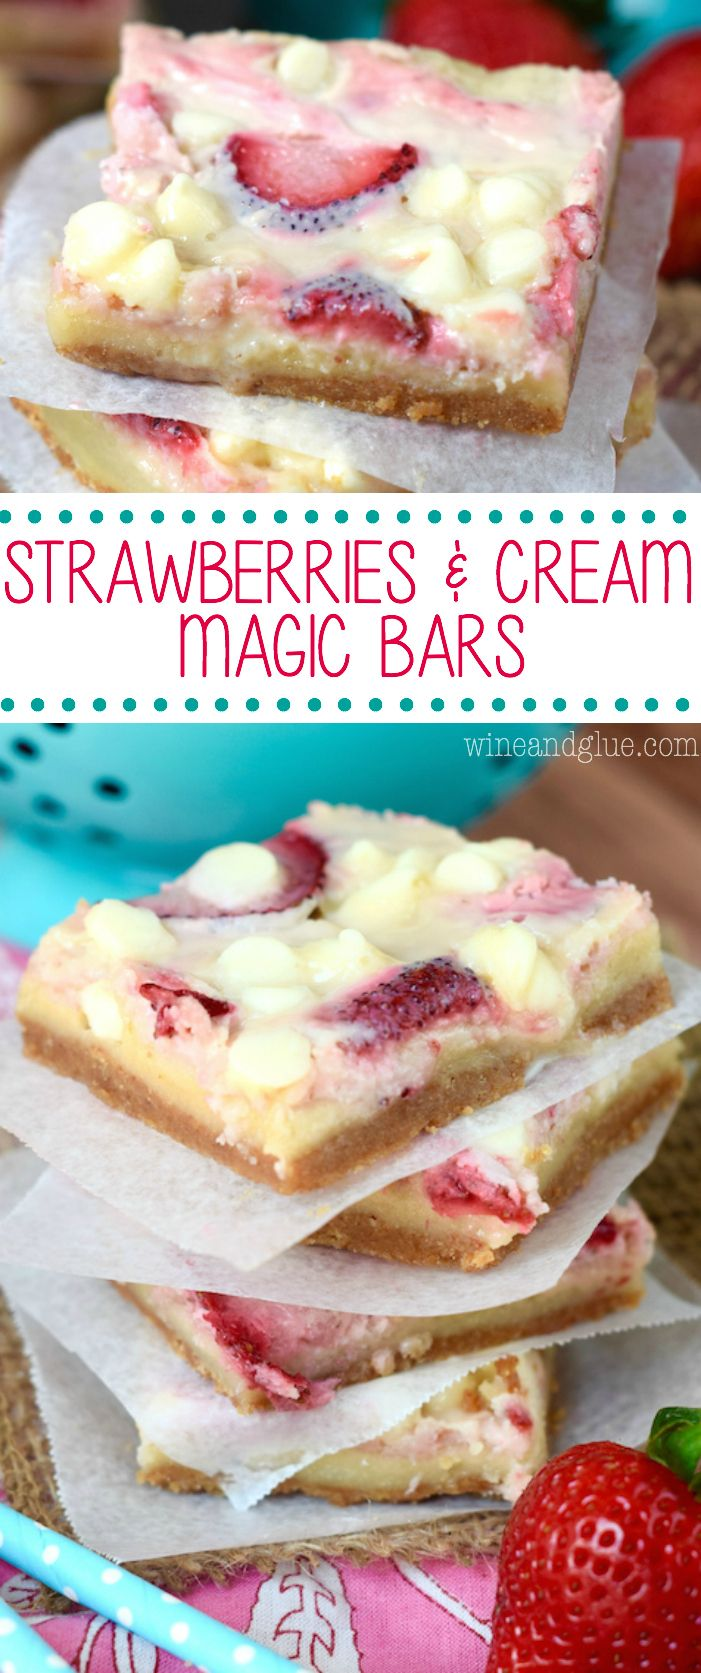 These Strawberries and Cream Magic Bars are pure magic. Made with fresh strawberries and a sugar cookie layer, they are seriously amazing!